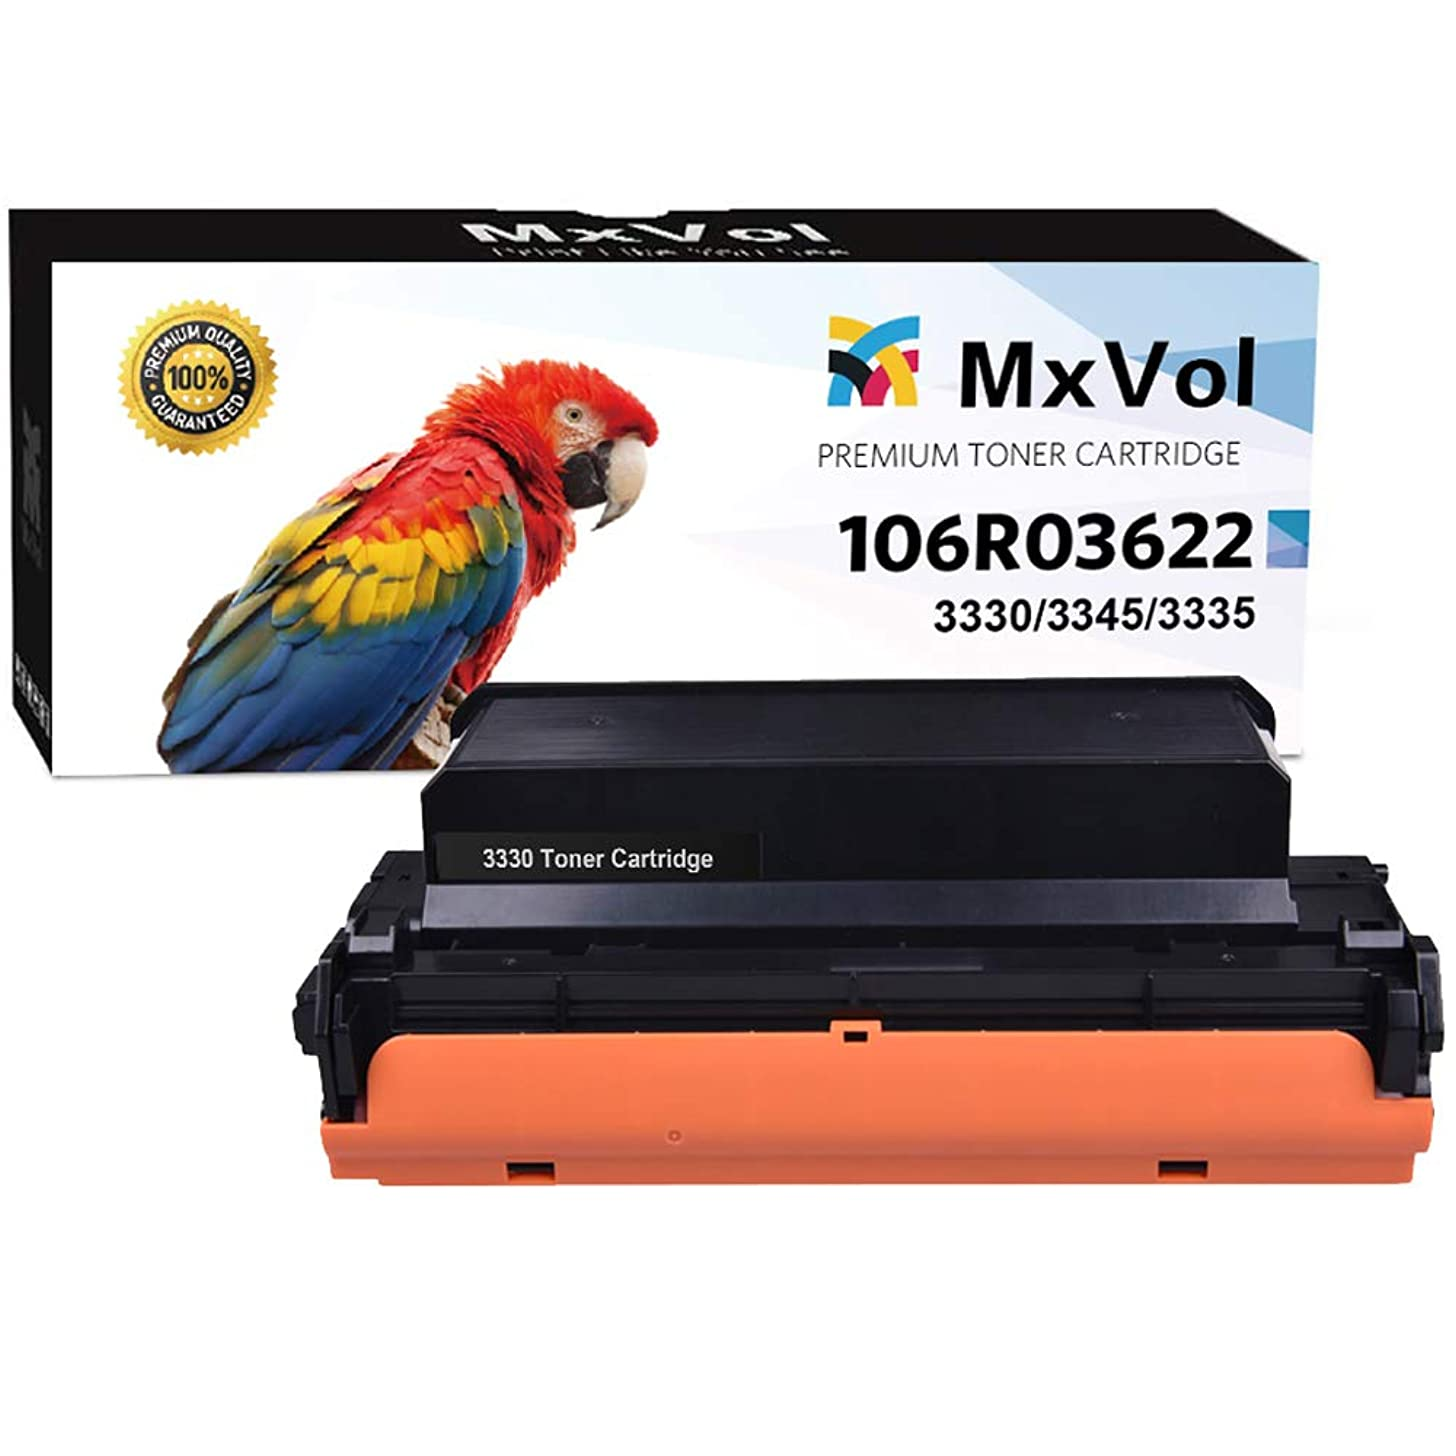 MxVol Compatible Xerox Phaser 3330 Toner Cartridge 1-Pack, 106R03622 High Yield Black 8,500 Pages use for Xerox Phaser 3330, WorkCentre 3345 3335 Printer